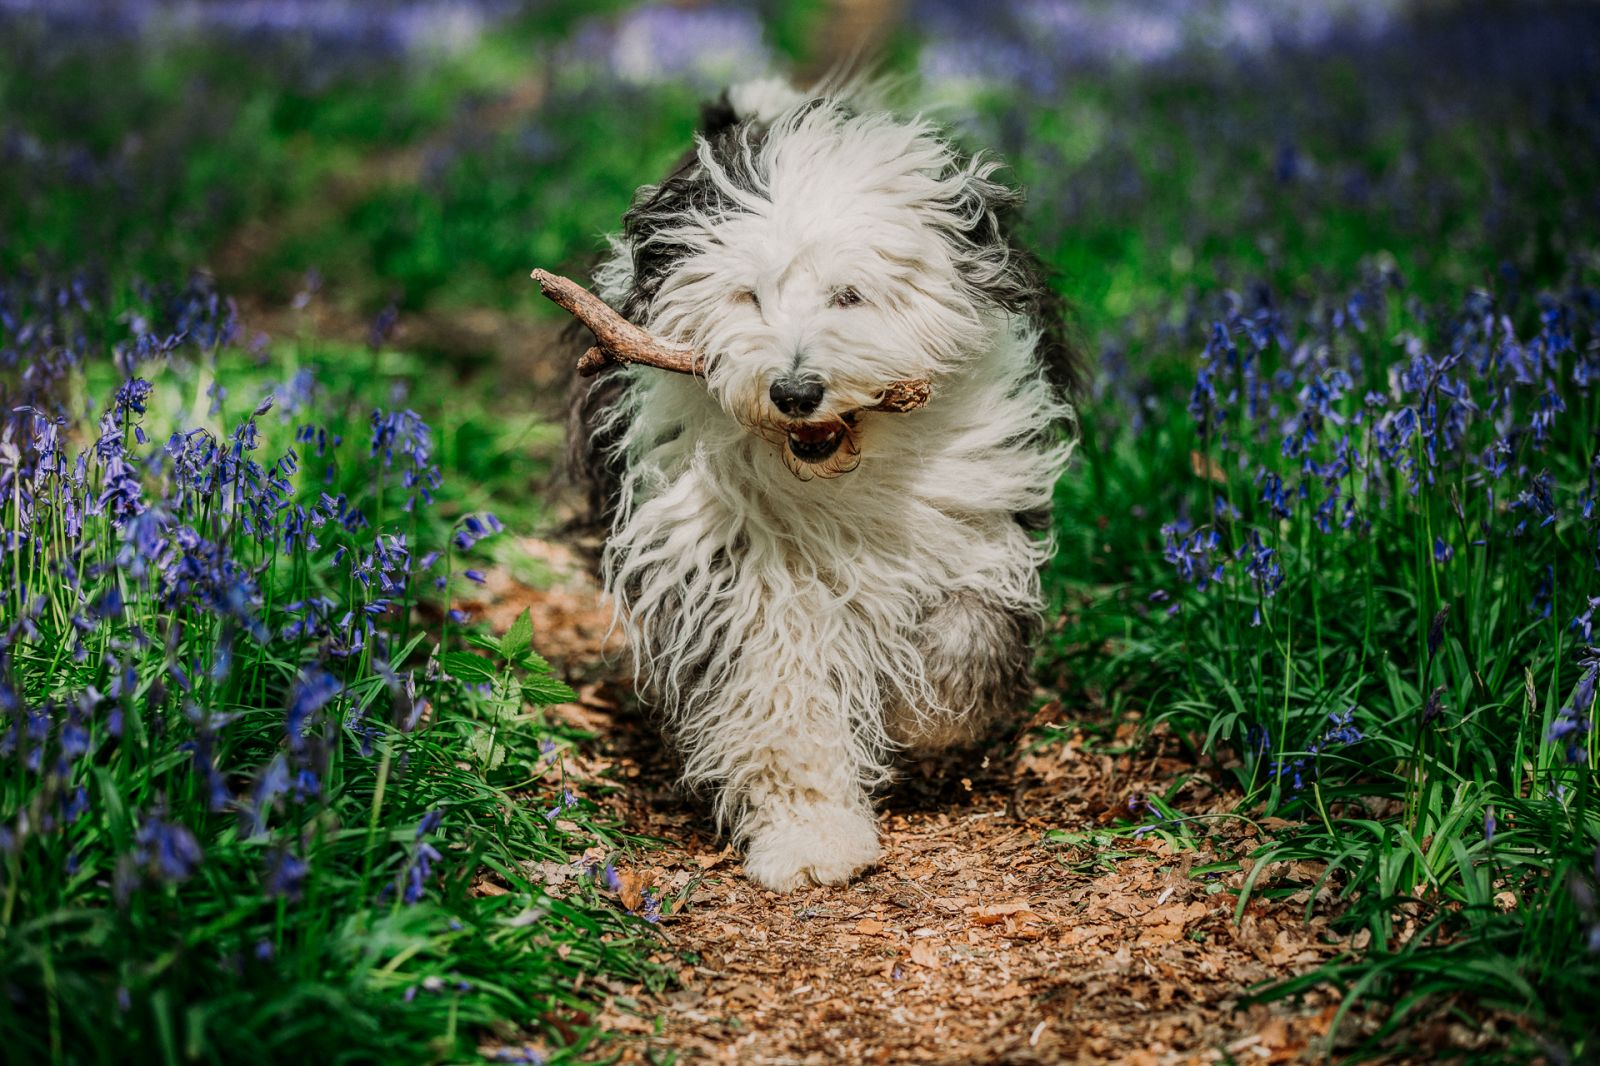 Old English Sheepdog carrying a stick on a path through bluebells